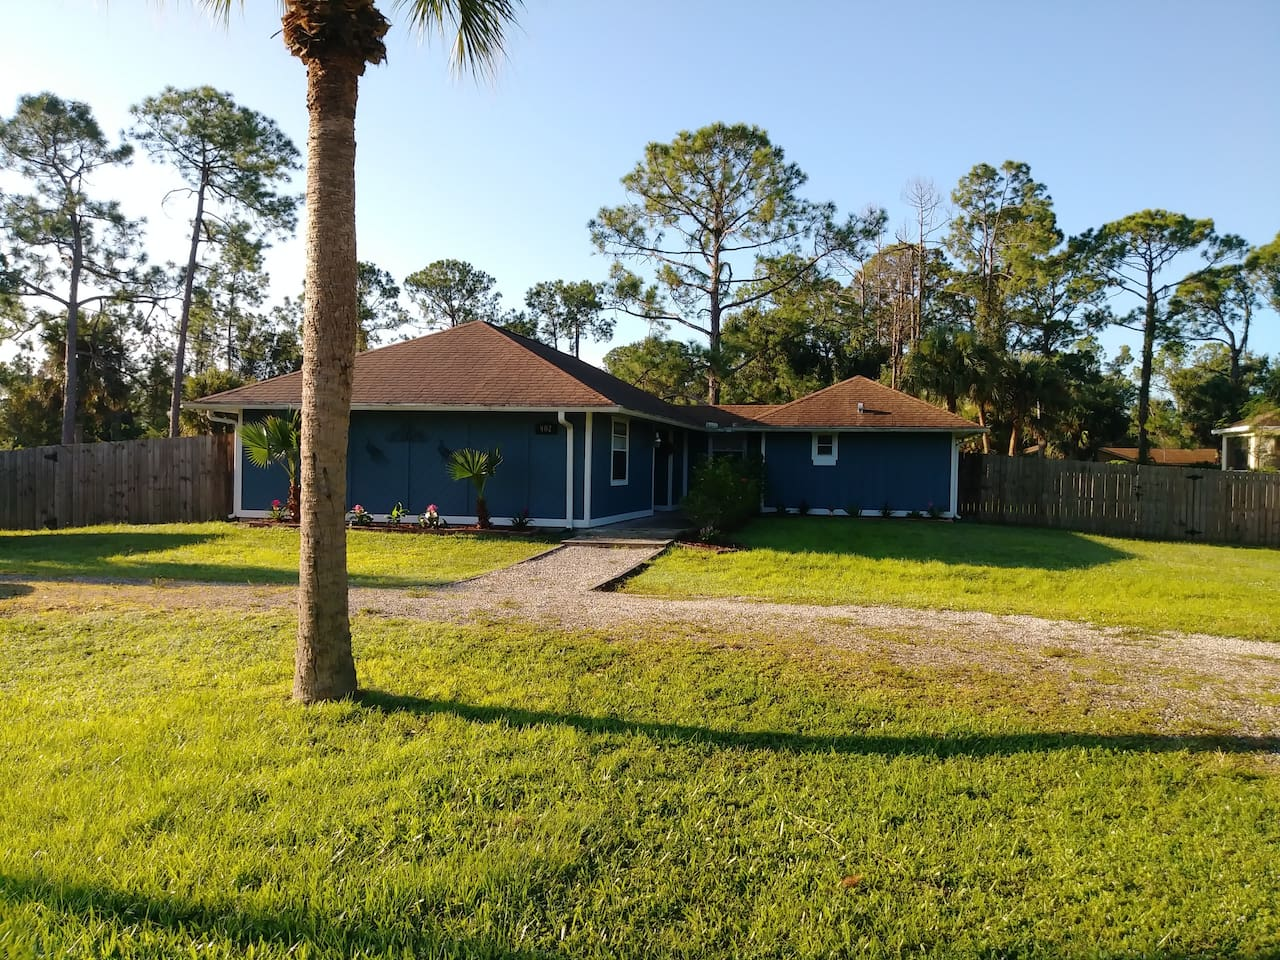 SERENITY RETREAT Quite neighborhood yet close to many ammenities. U-shaped drive, fenced in backyard